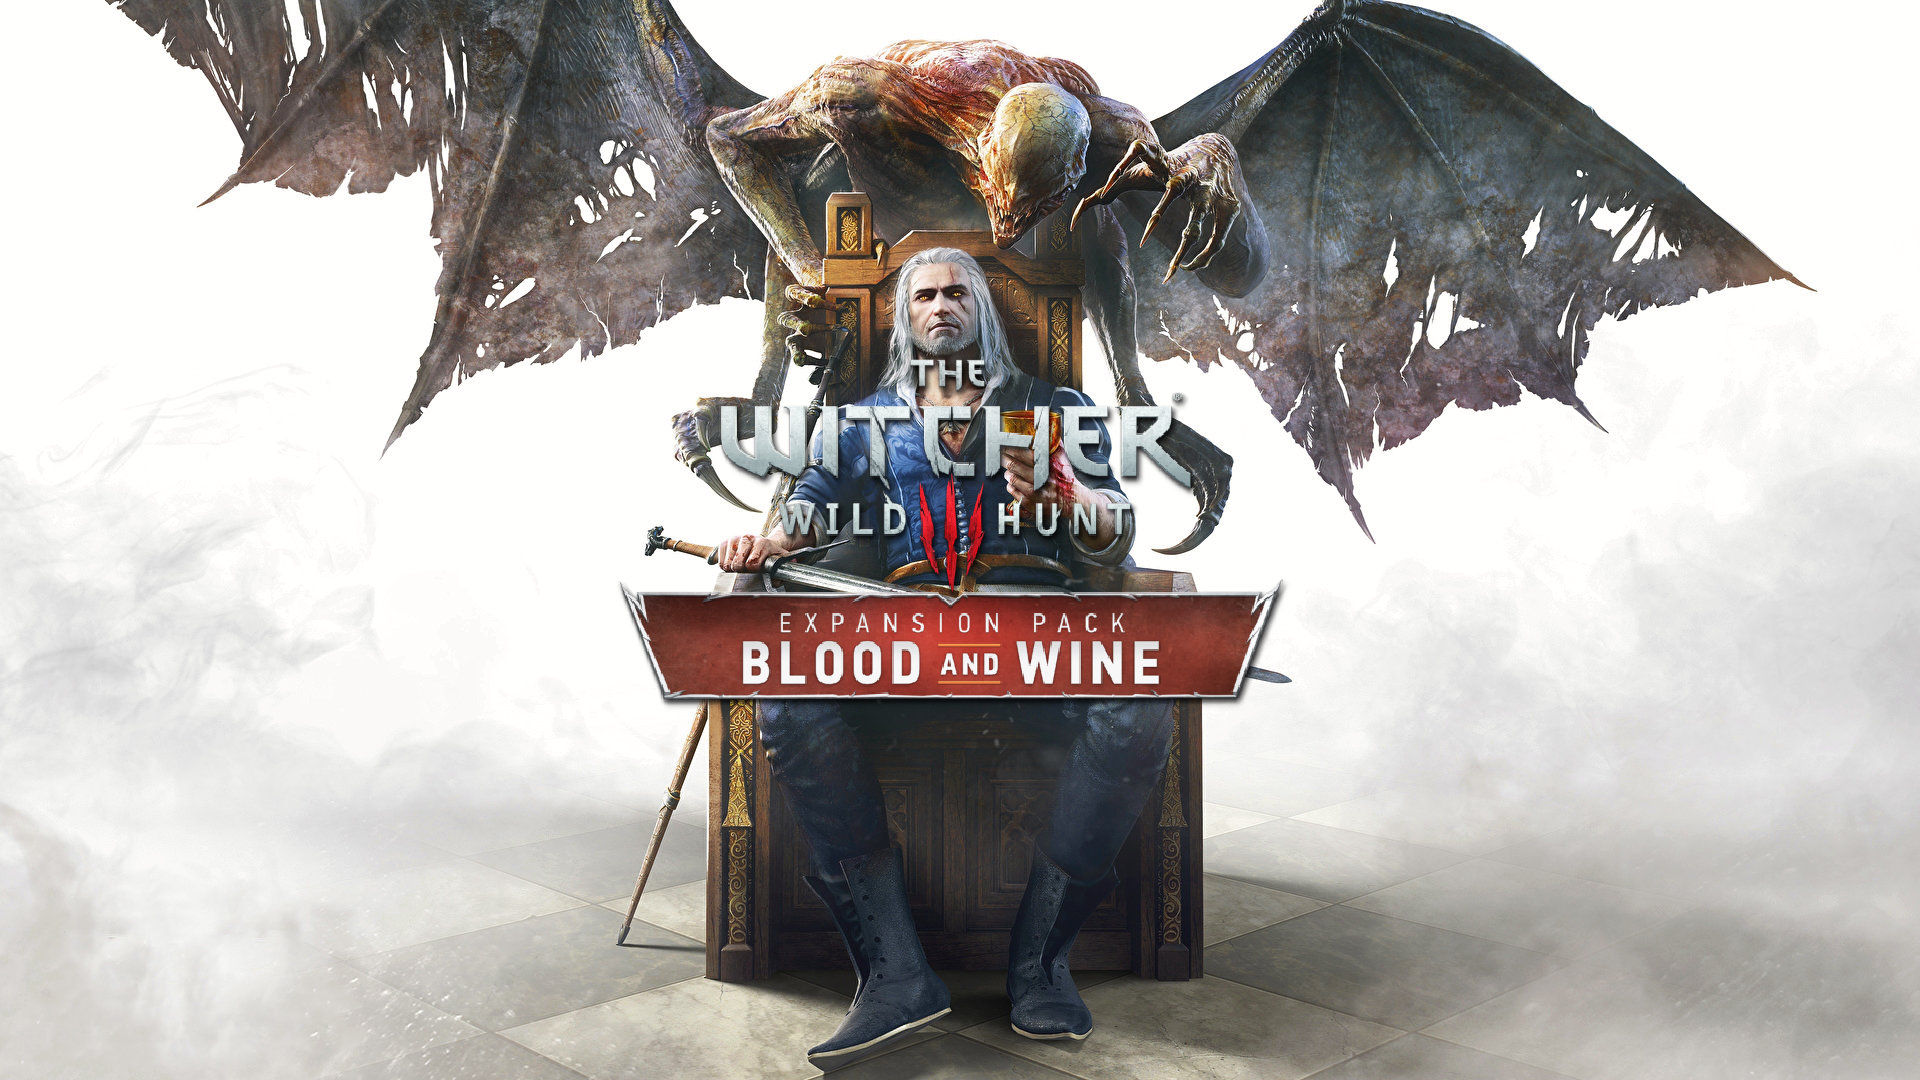 The Witcher 3: Wild Hunt Blood and Wine DLC Oyun İncelemesi